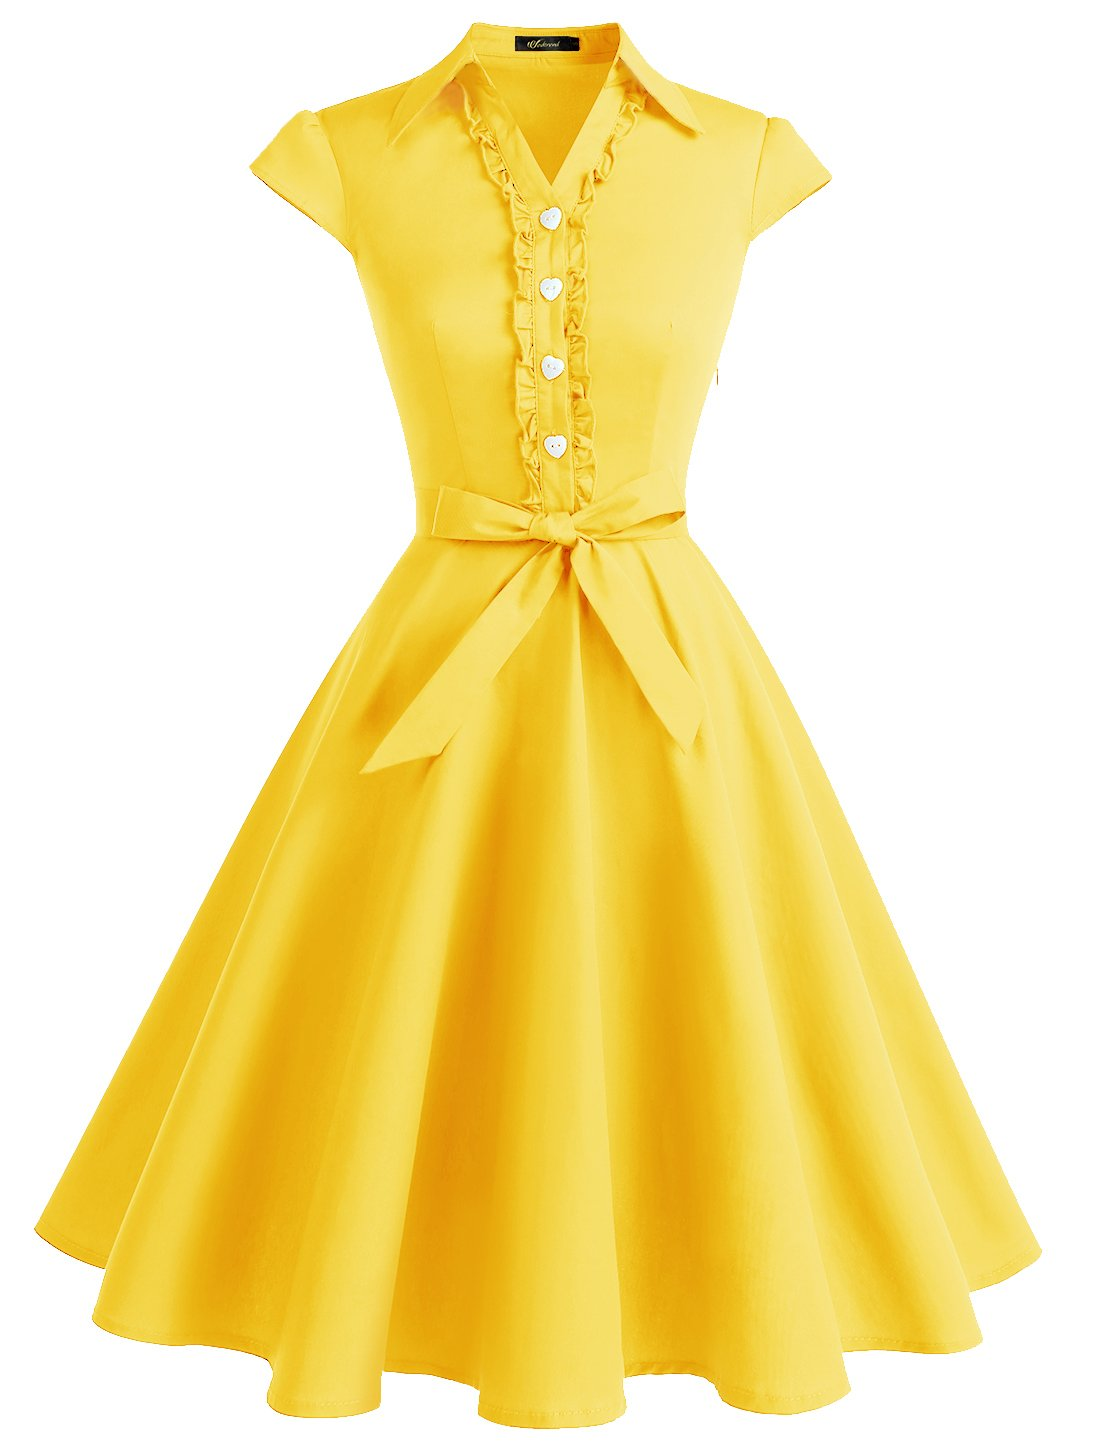 Wedtrend Women's 1950s Cap Sleeves Swing Vintage Party Dresses Multi Colored WTP10007YellowL